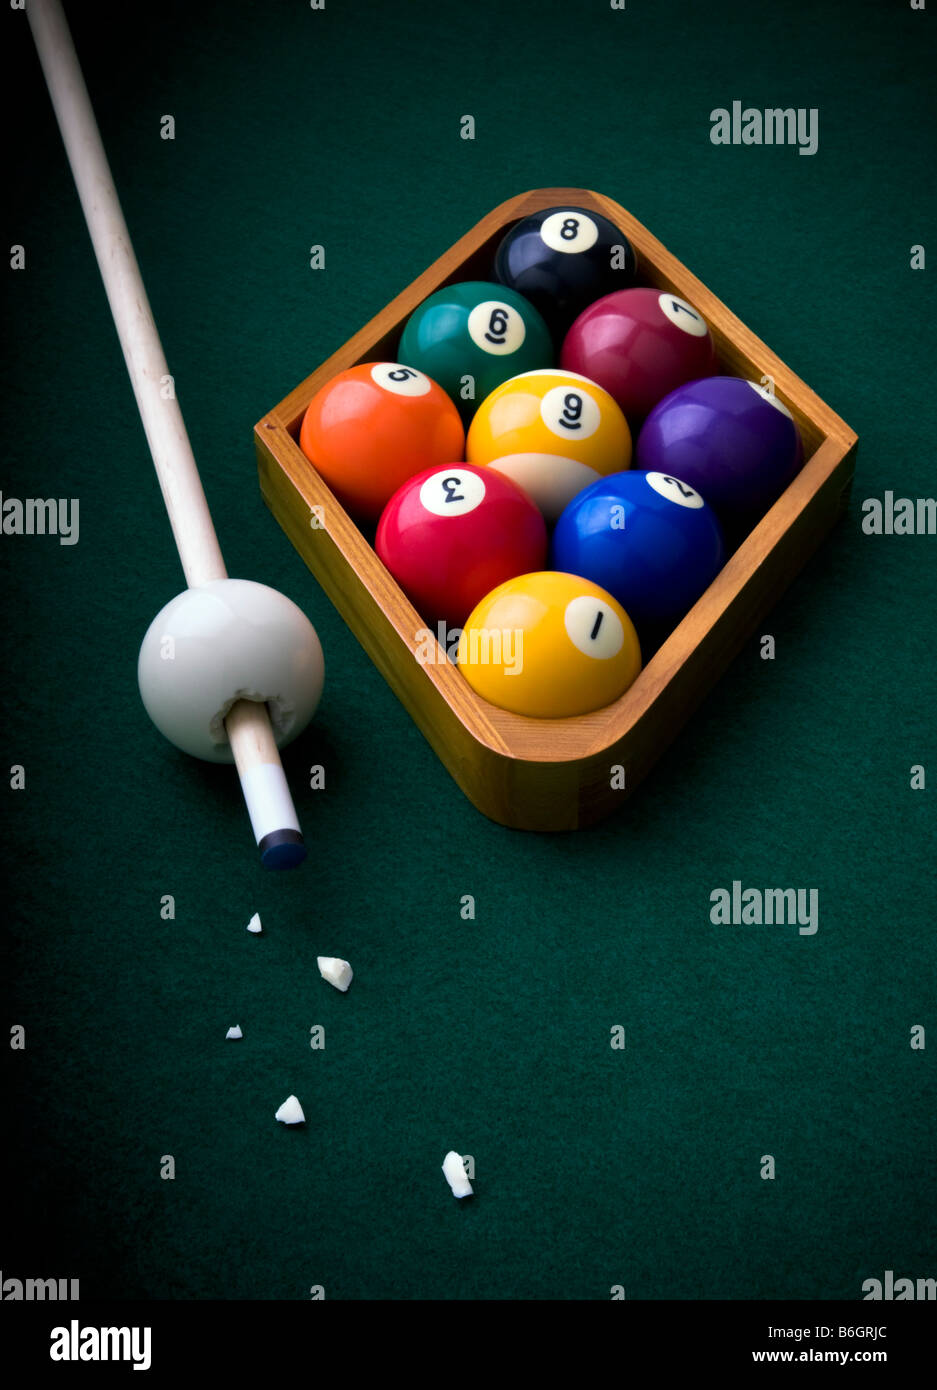 Billiard, pool balls arranged in a nine ball rack on a green felt table with a surrealistic view of the cue ball - Stock Image